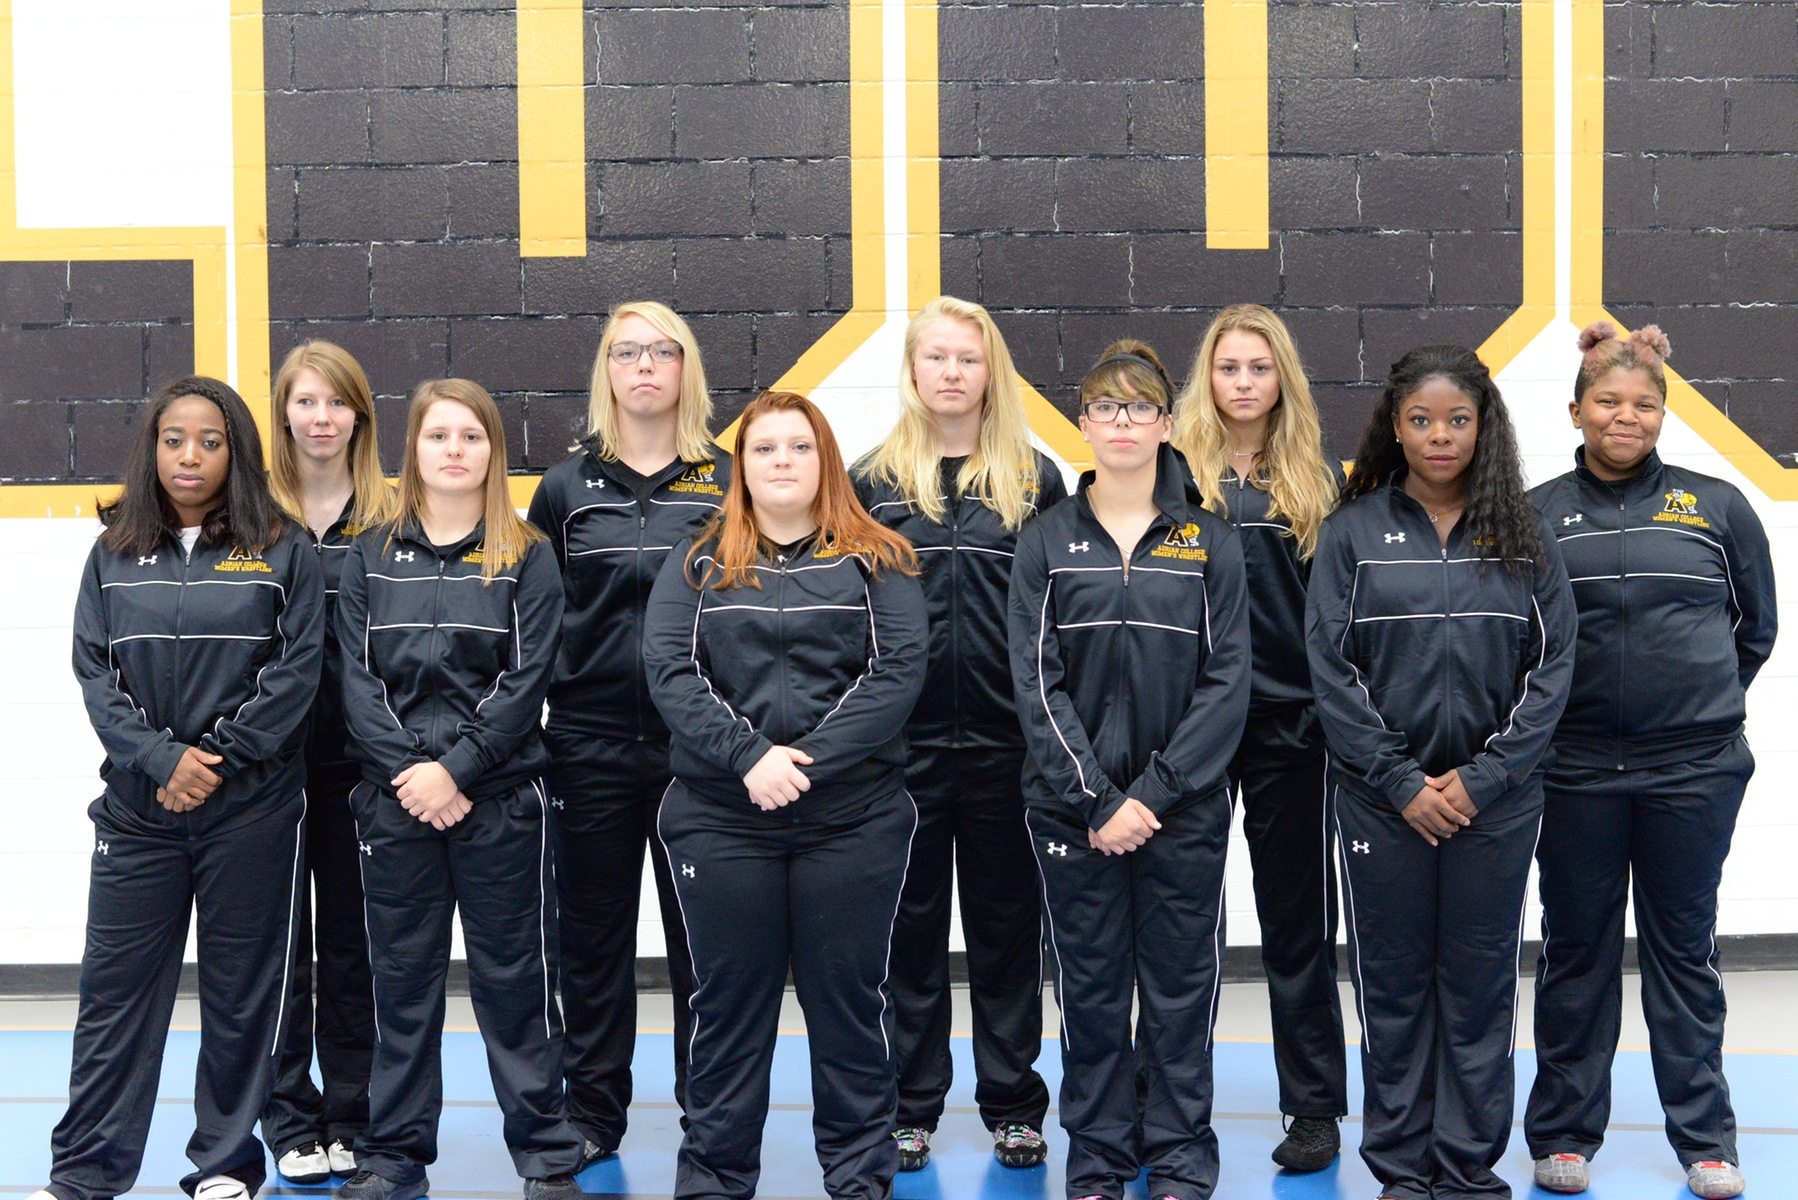 The 2017-18 edition of the Adrian College women's wrestling program in its third season. (Photo: Patrick Stewart)